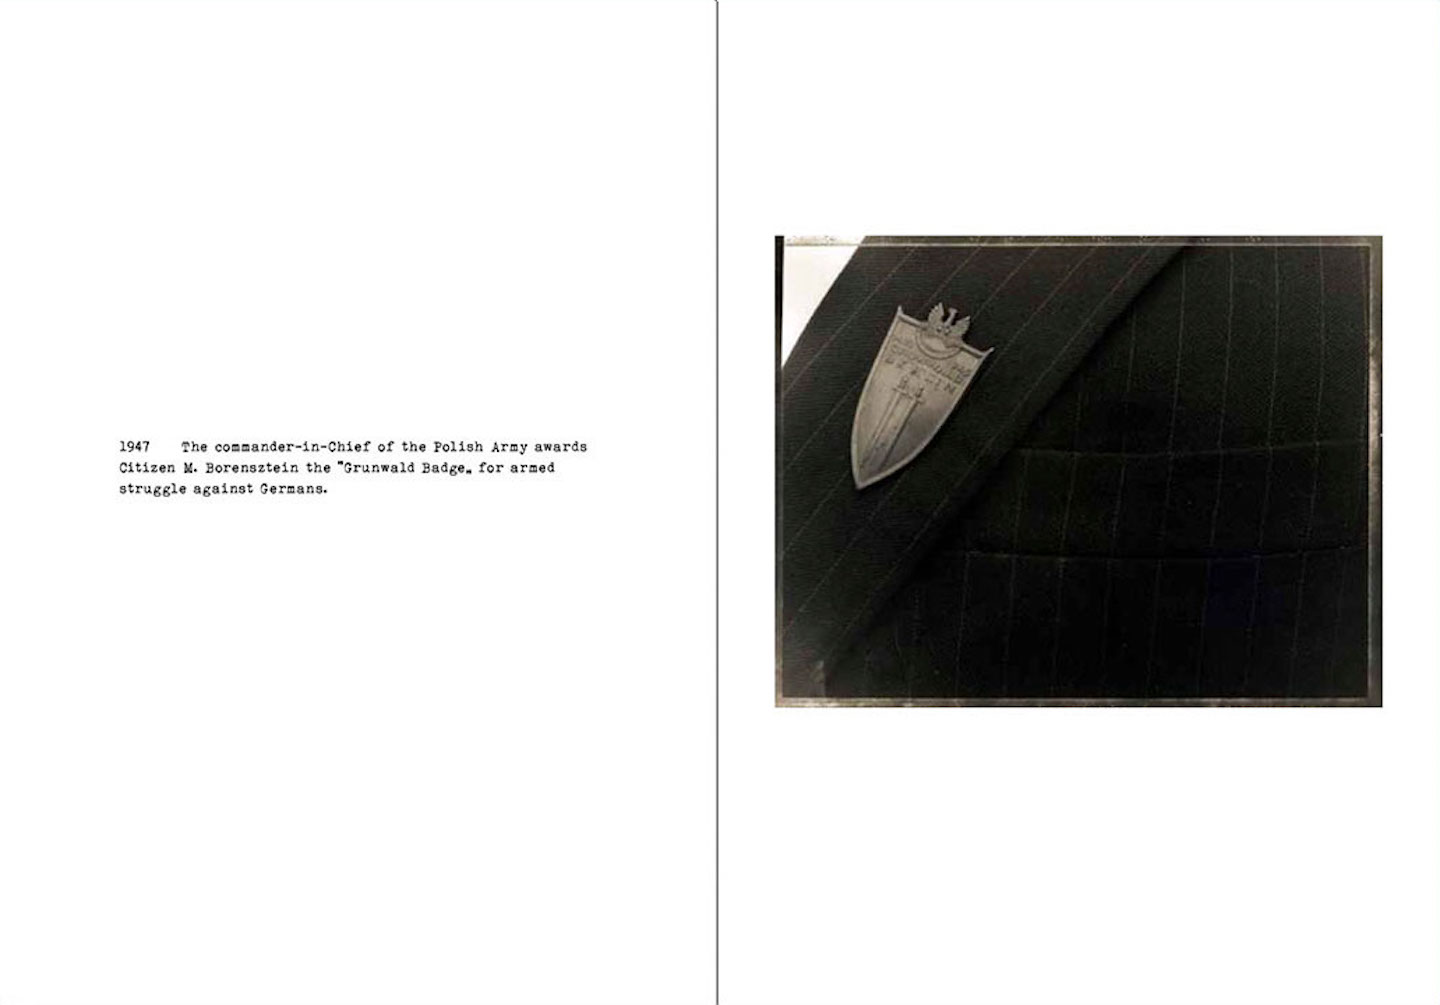 Nazraeli Press One Picture Book Two Series, Set 3: #9-12, Limited Edition(s) (with 4 Prints): Susan A. Zadeh: I; Daido Moriyama: Daido Moto; Leon Borensztein: Tata; Laurie Simmons: Instant Decorator